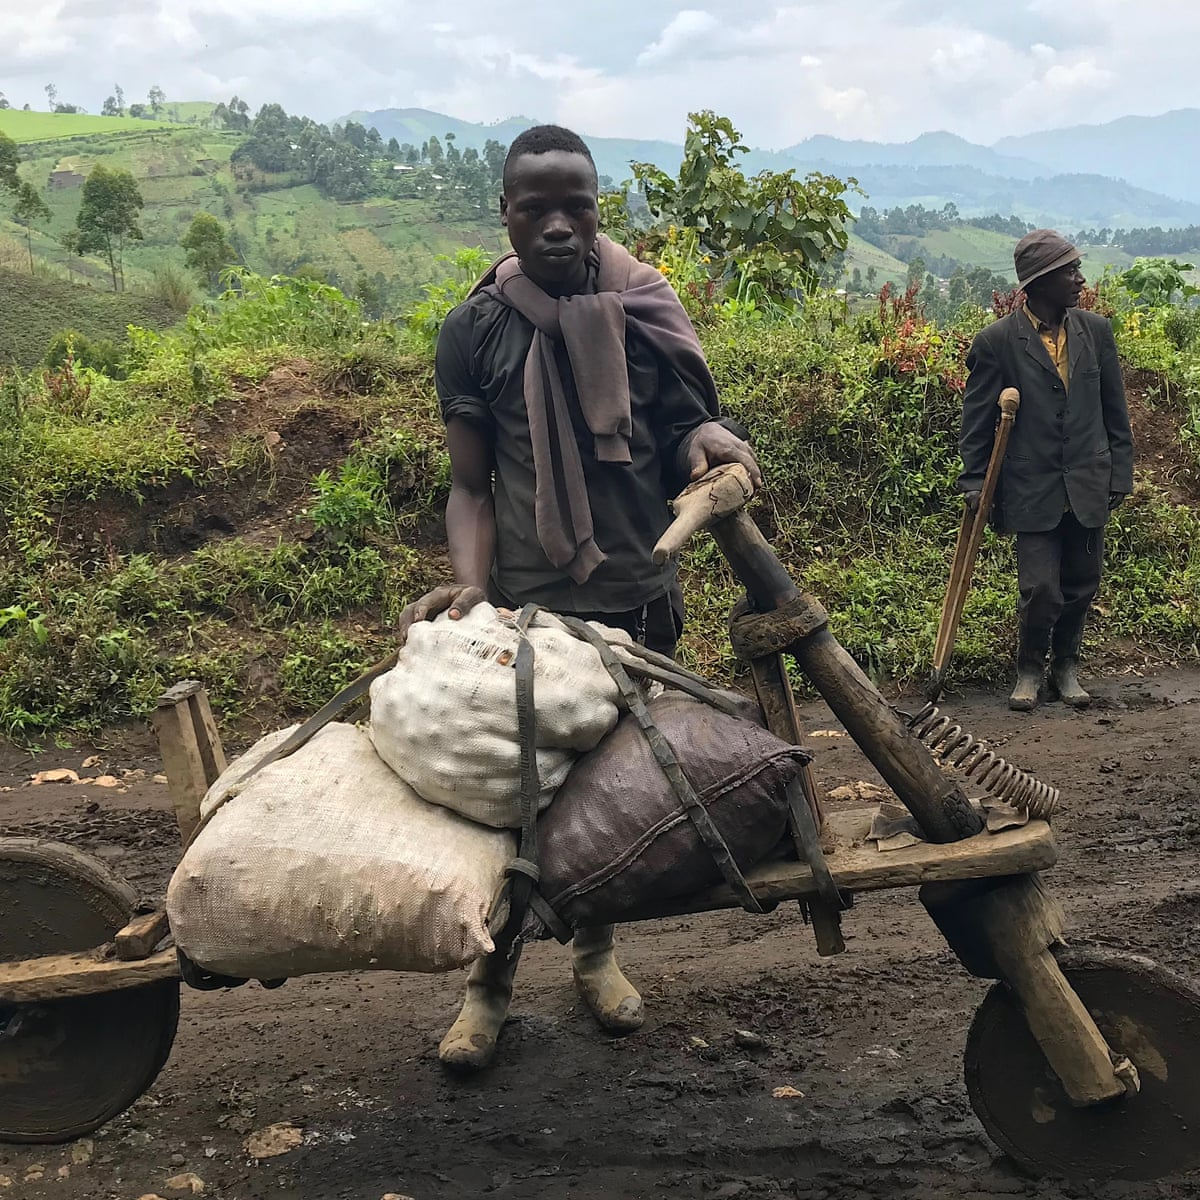 Covering The Drc Violence And Beauty In This Huge And Unforgiving Country Democratic Republic Of The Congo The Guardian